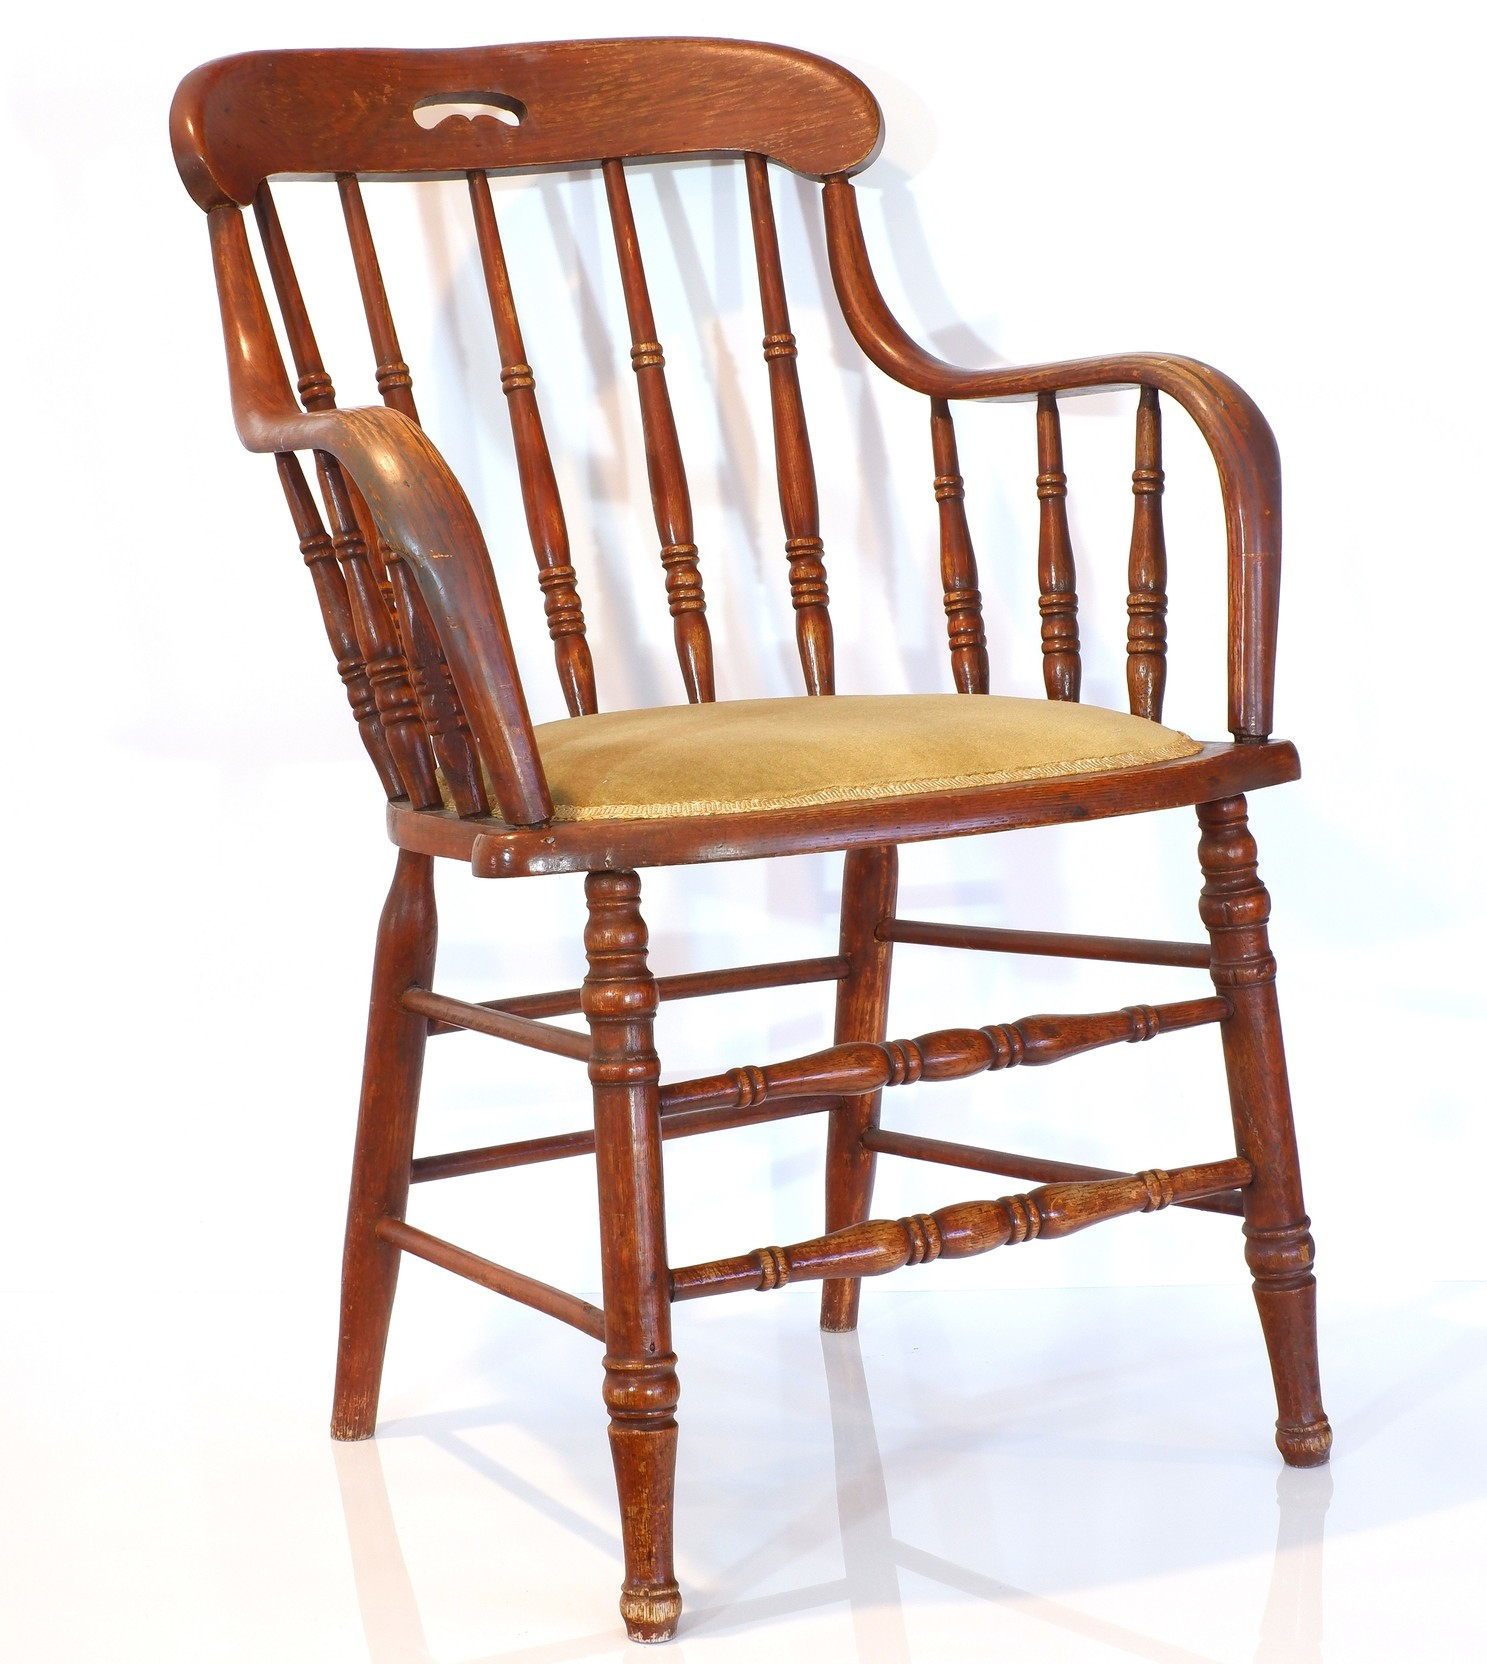 'American Oak Spindle Back Captains Chair Circa 1900 Sat in By Queen Elizabeth During Her 1970 Visit'